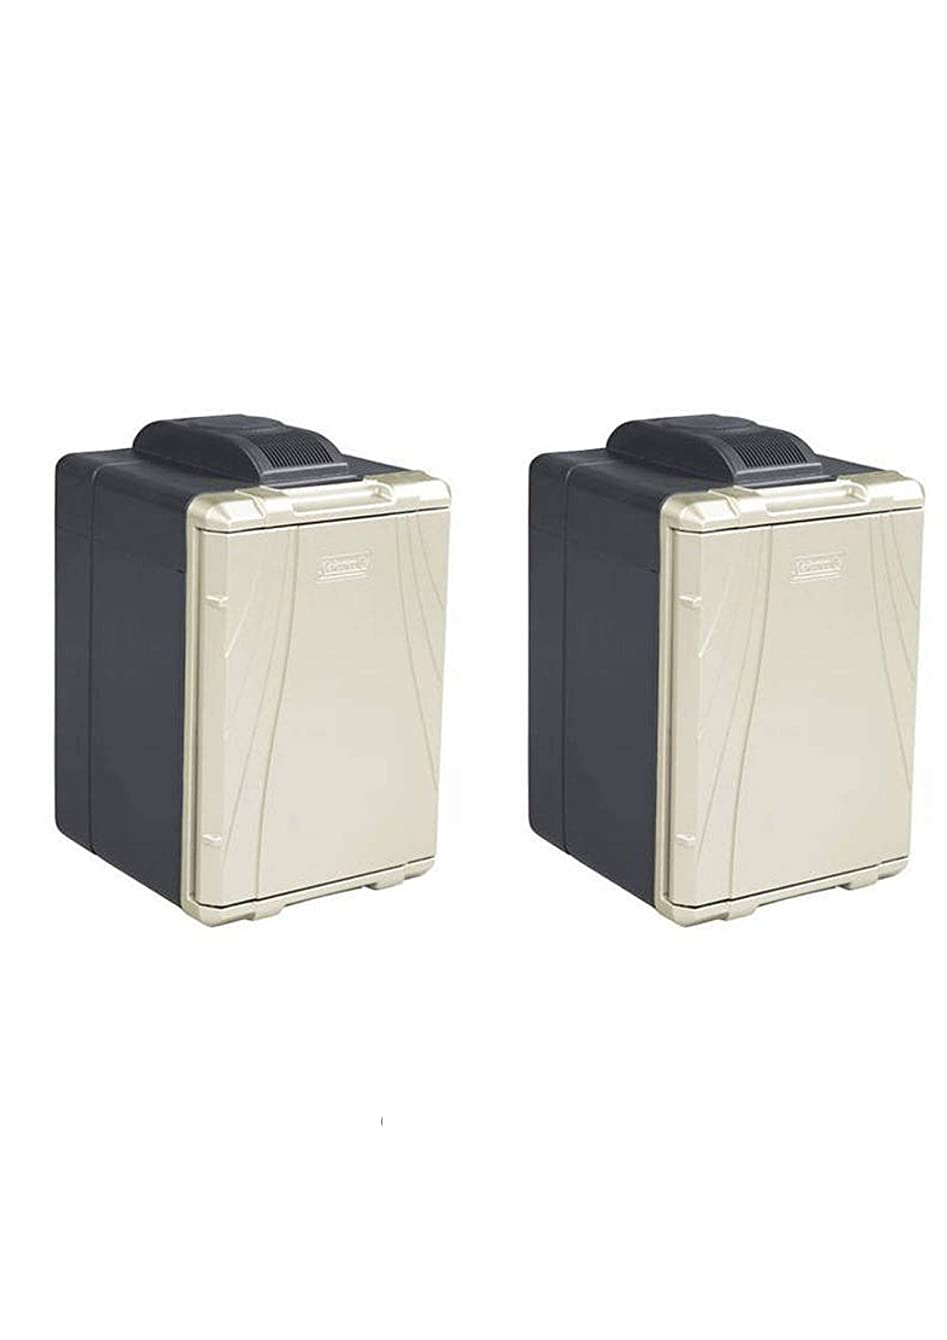 Coleman 40-Quart PowerChill Thermoelectric Cooler with Power Cord (2 Pack,40-Quart)